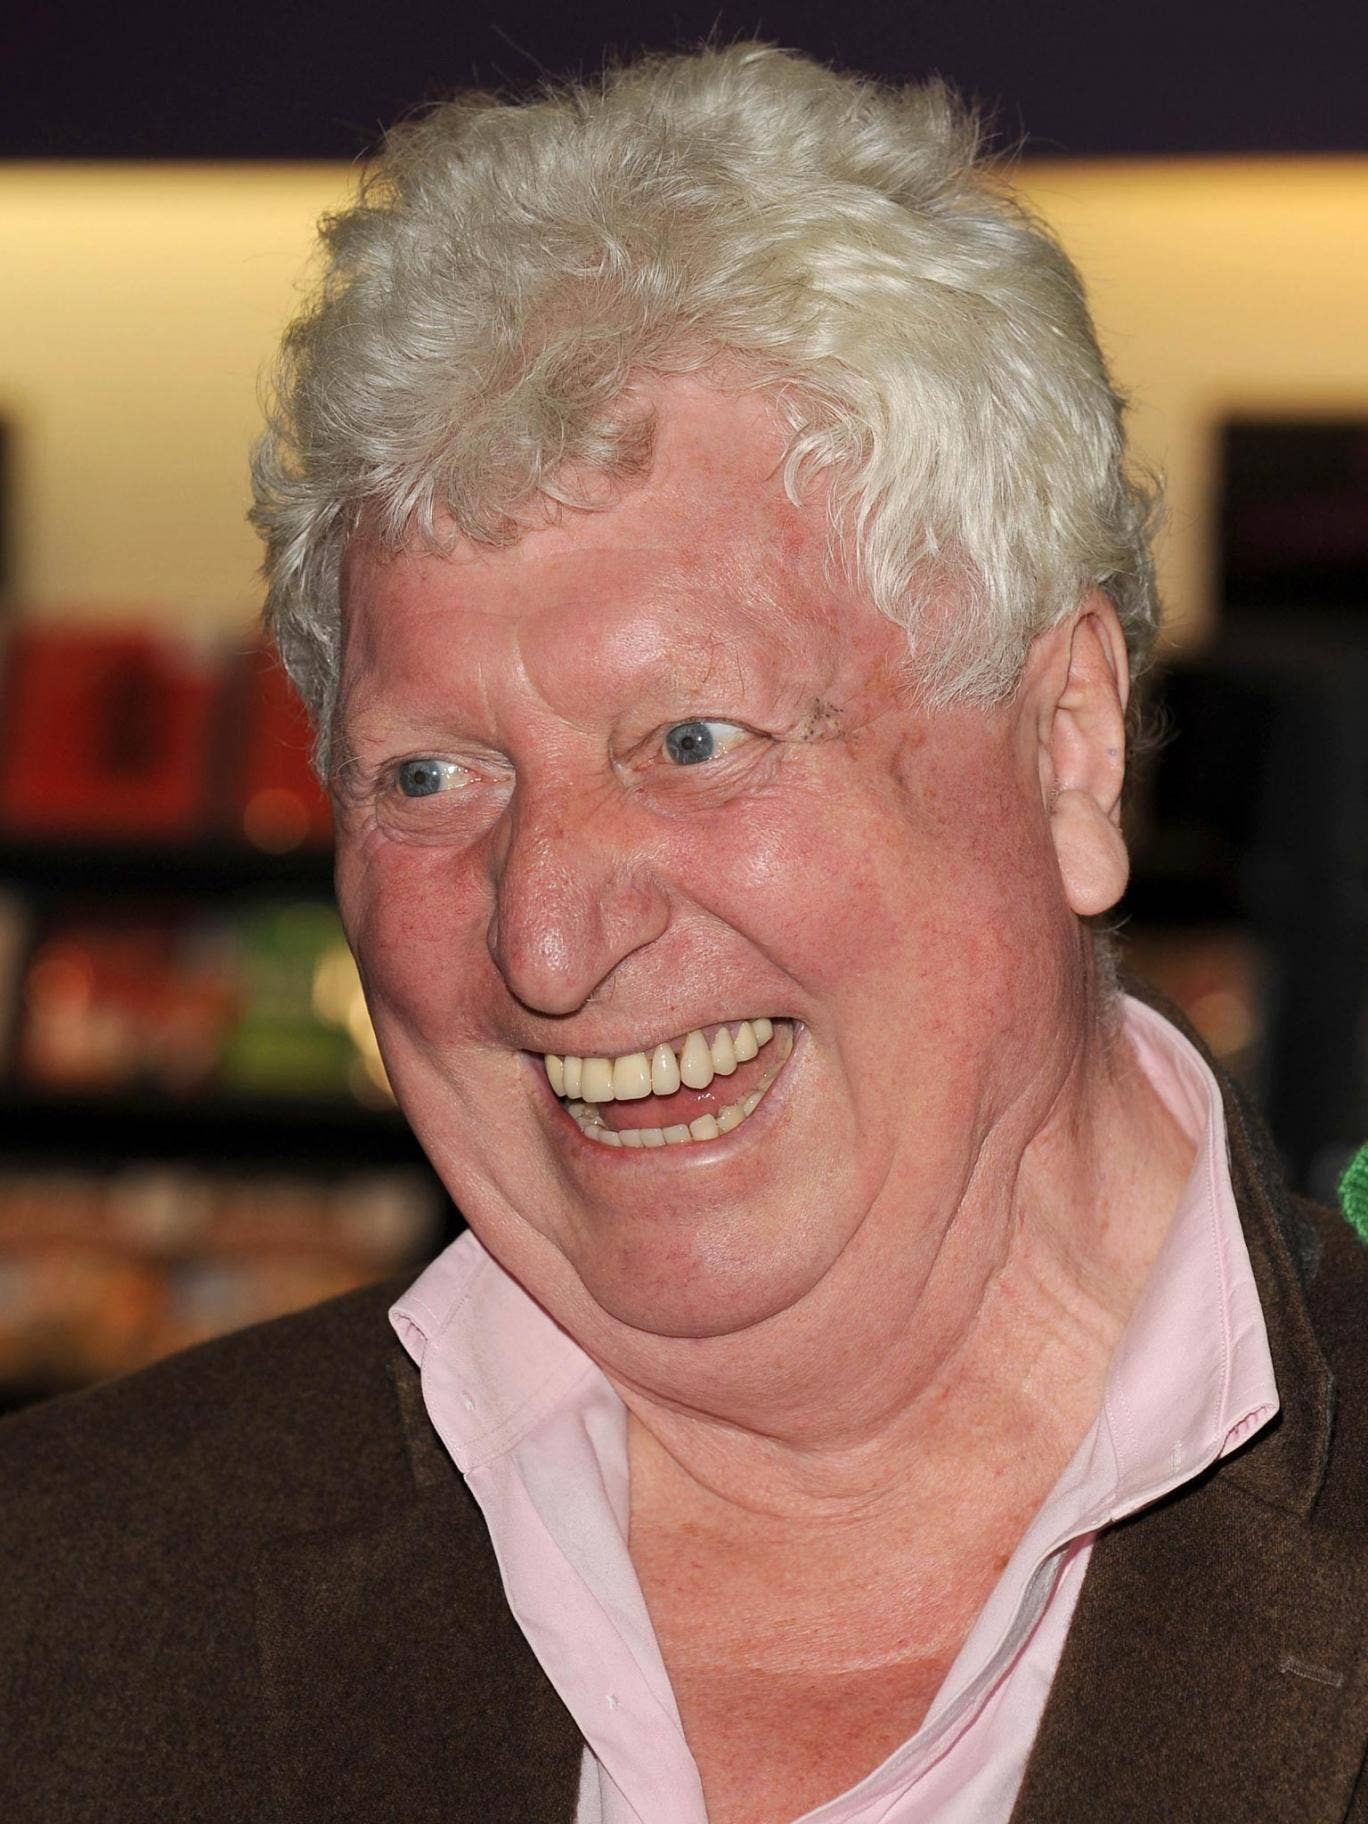 Tom Baker who played the Doctor longer than any other actor